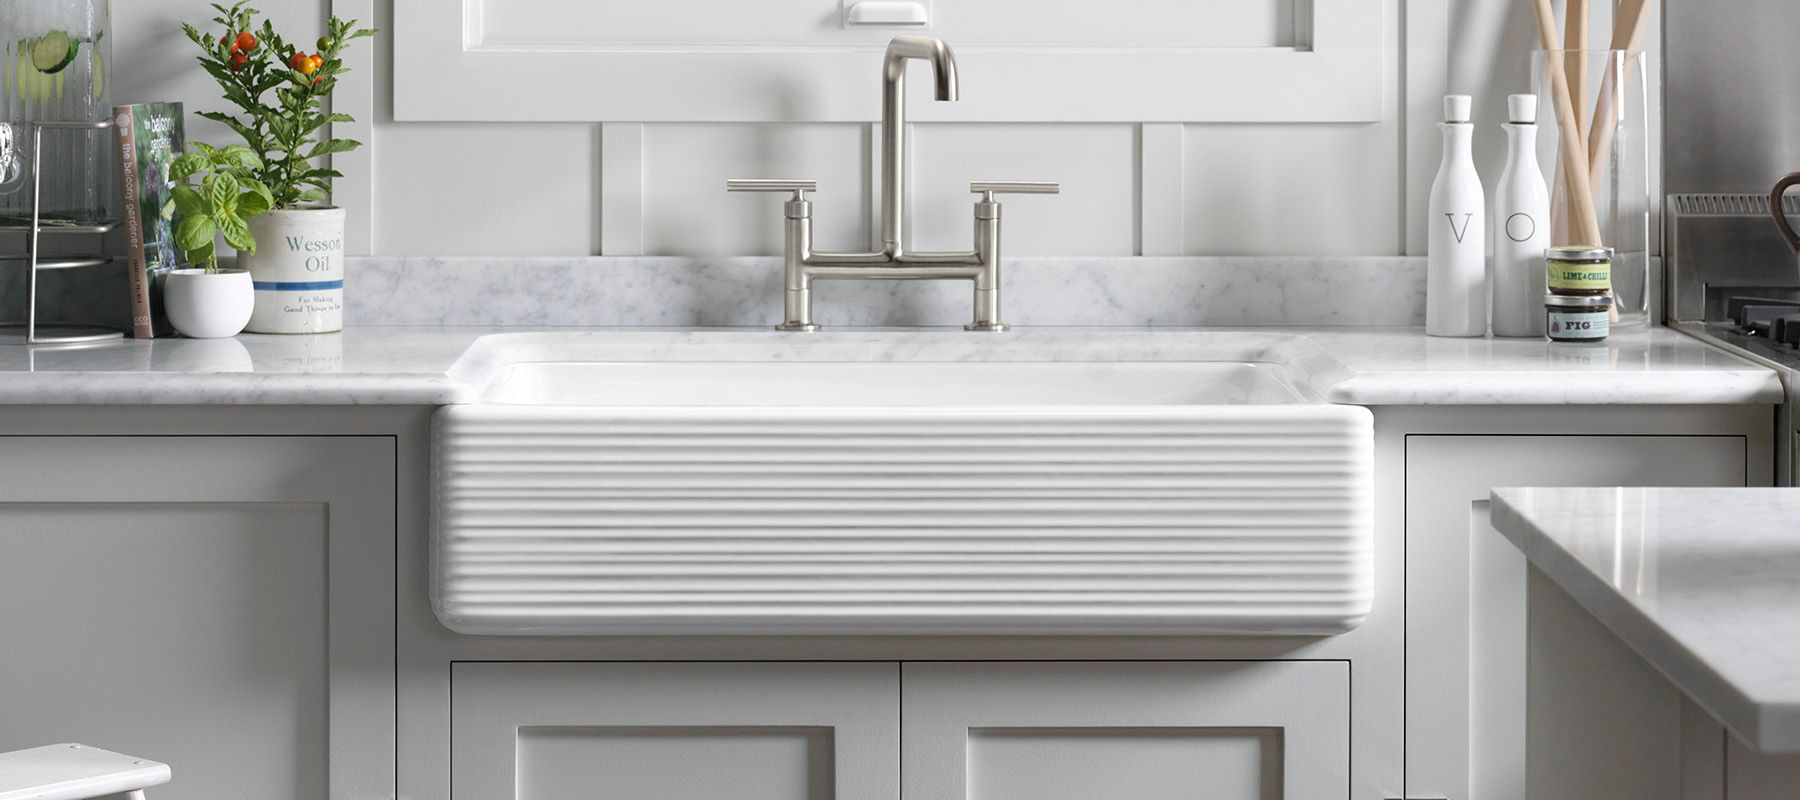 apron front sinks - Kohler Kitchen Sinks